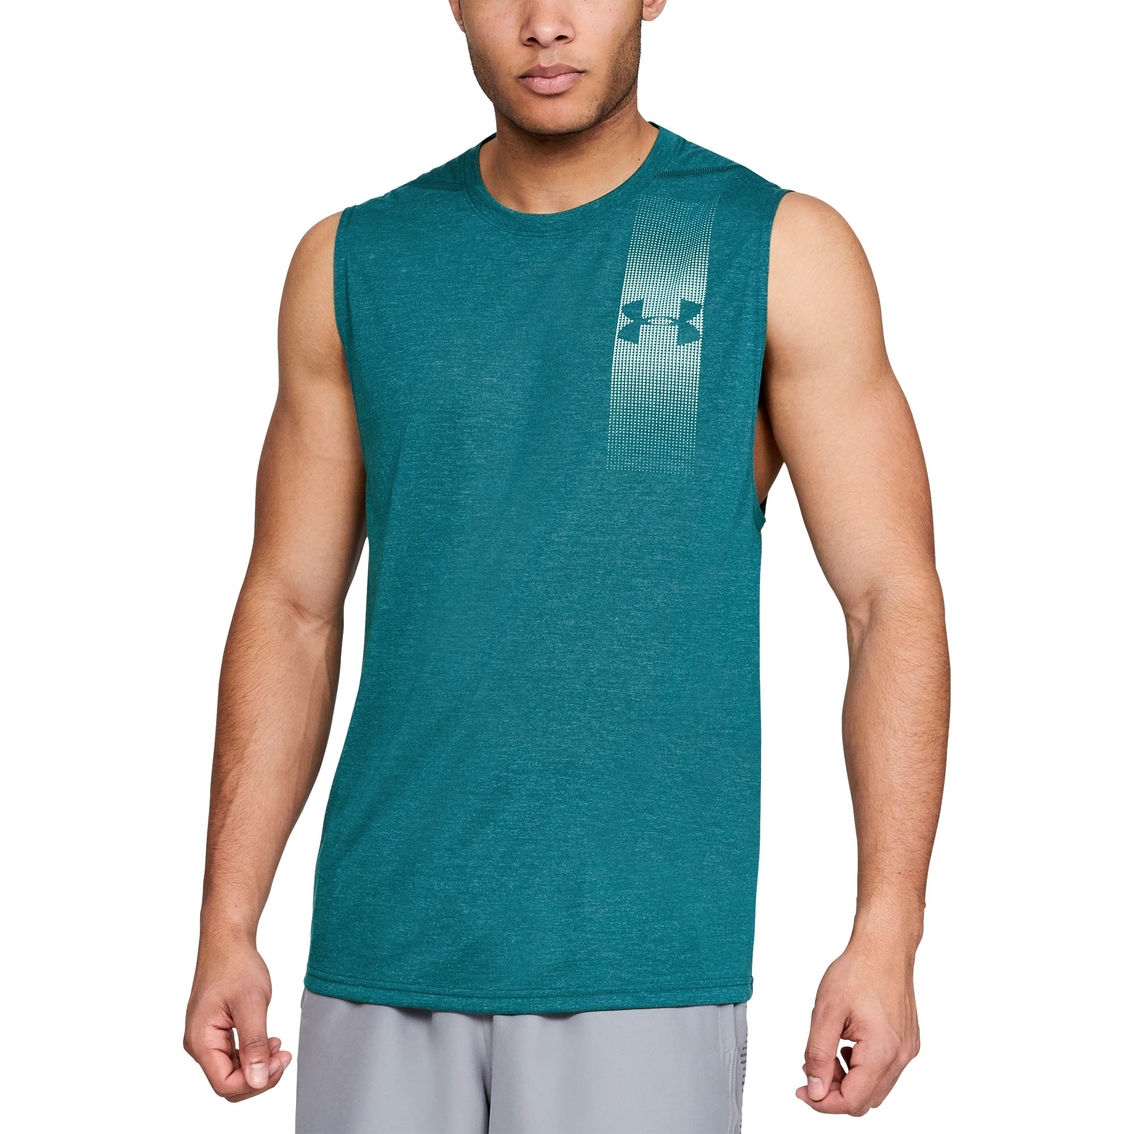 ab35426449af5d Under Armour Threadborne Graphic Muscle Tank